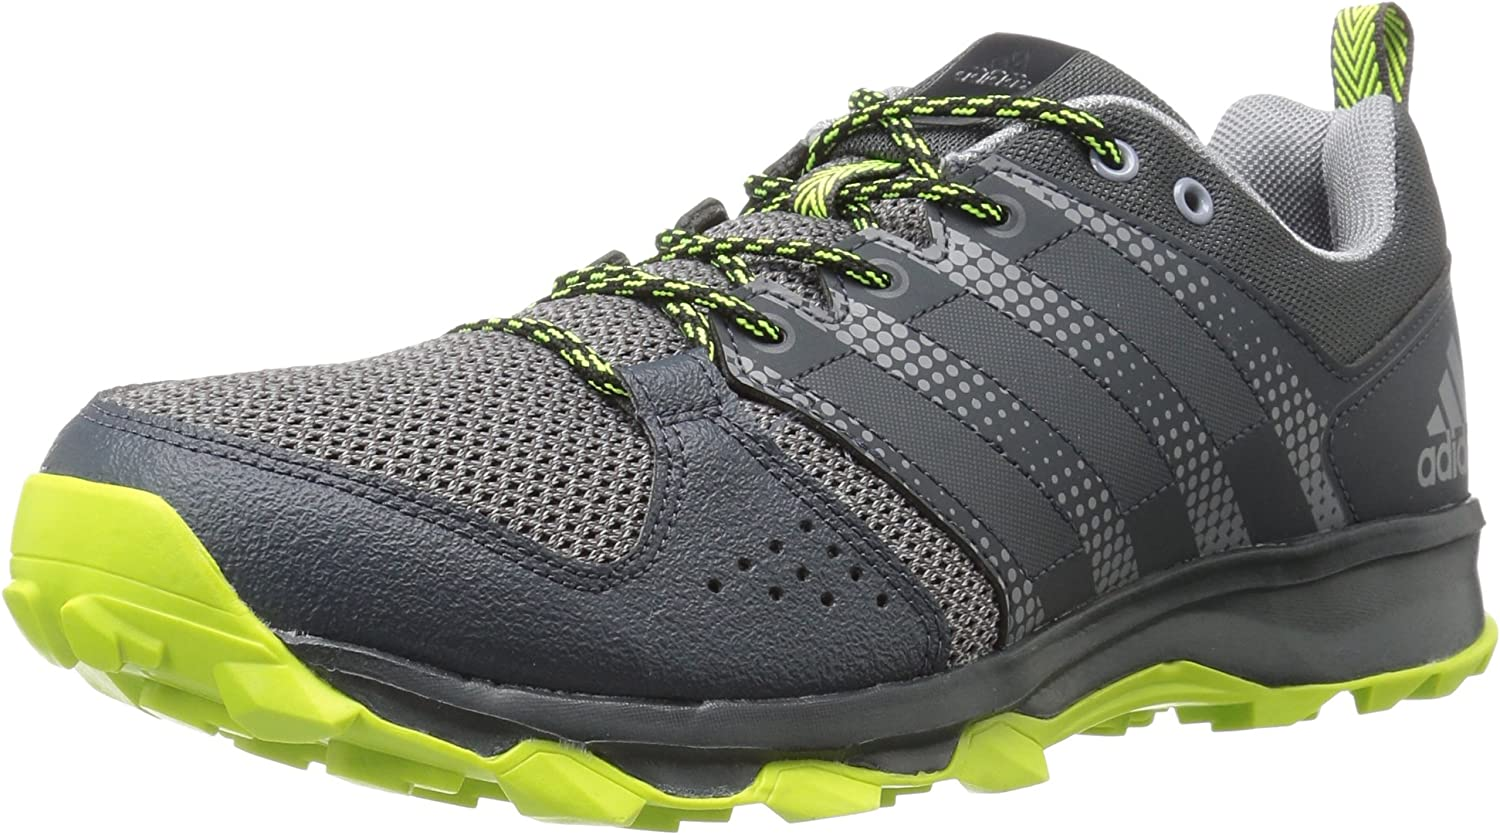 New Balance Men s Mtcrglw2 Trail Running Shoe